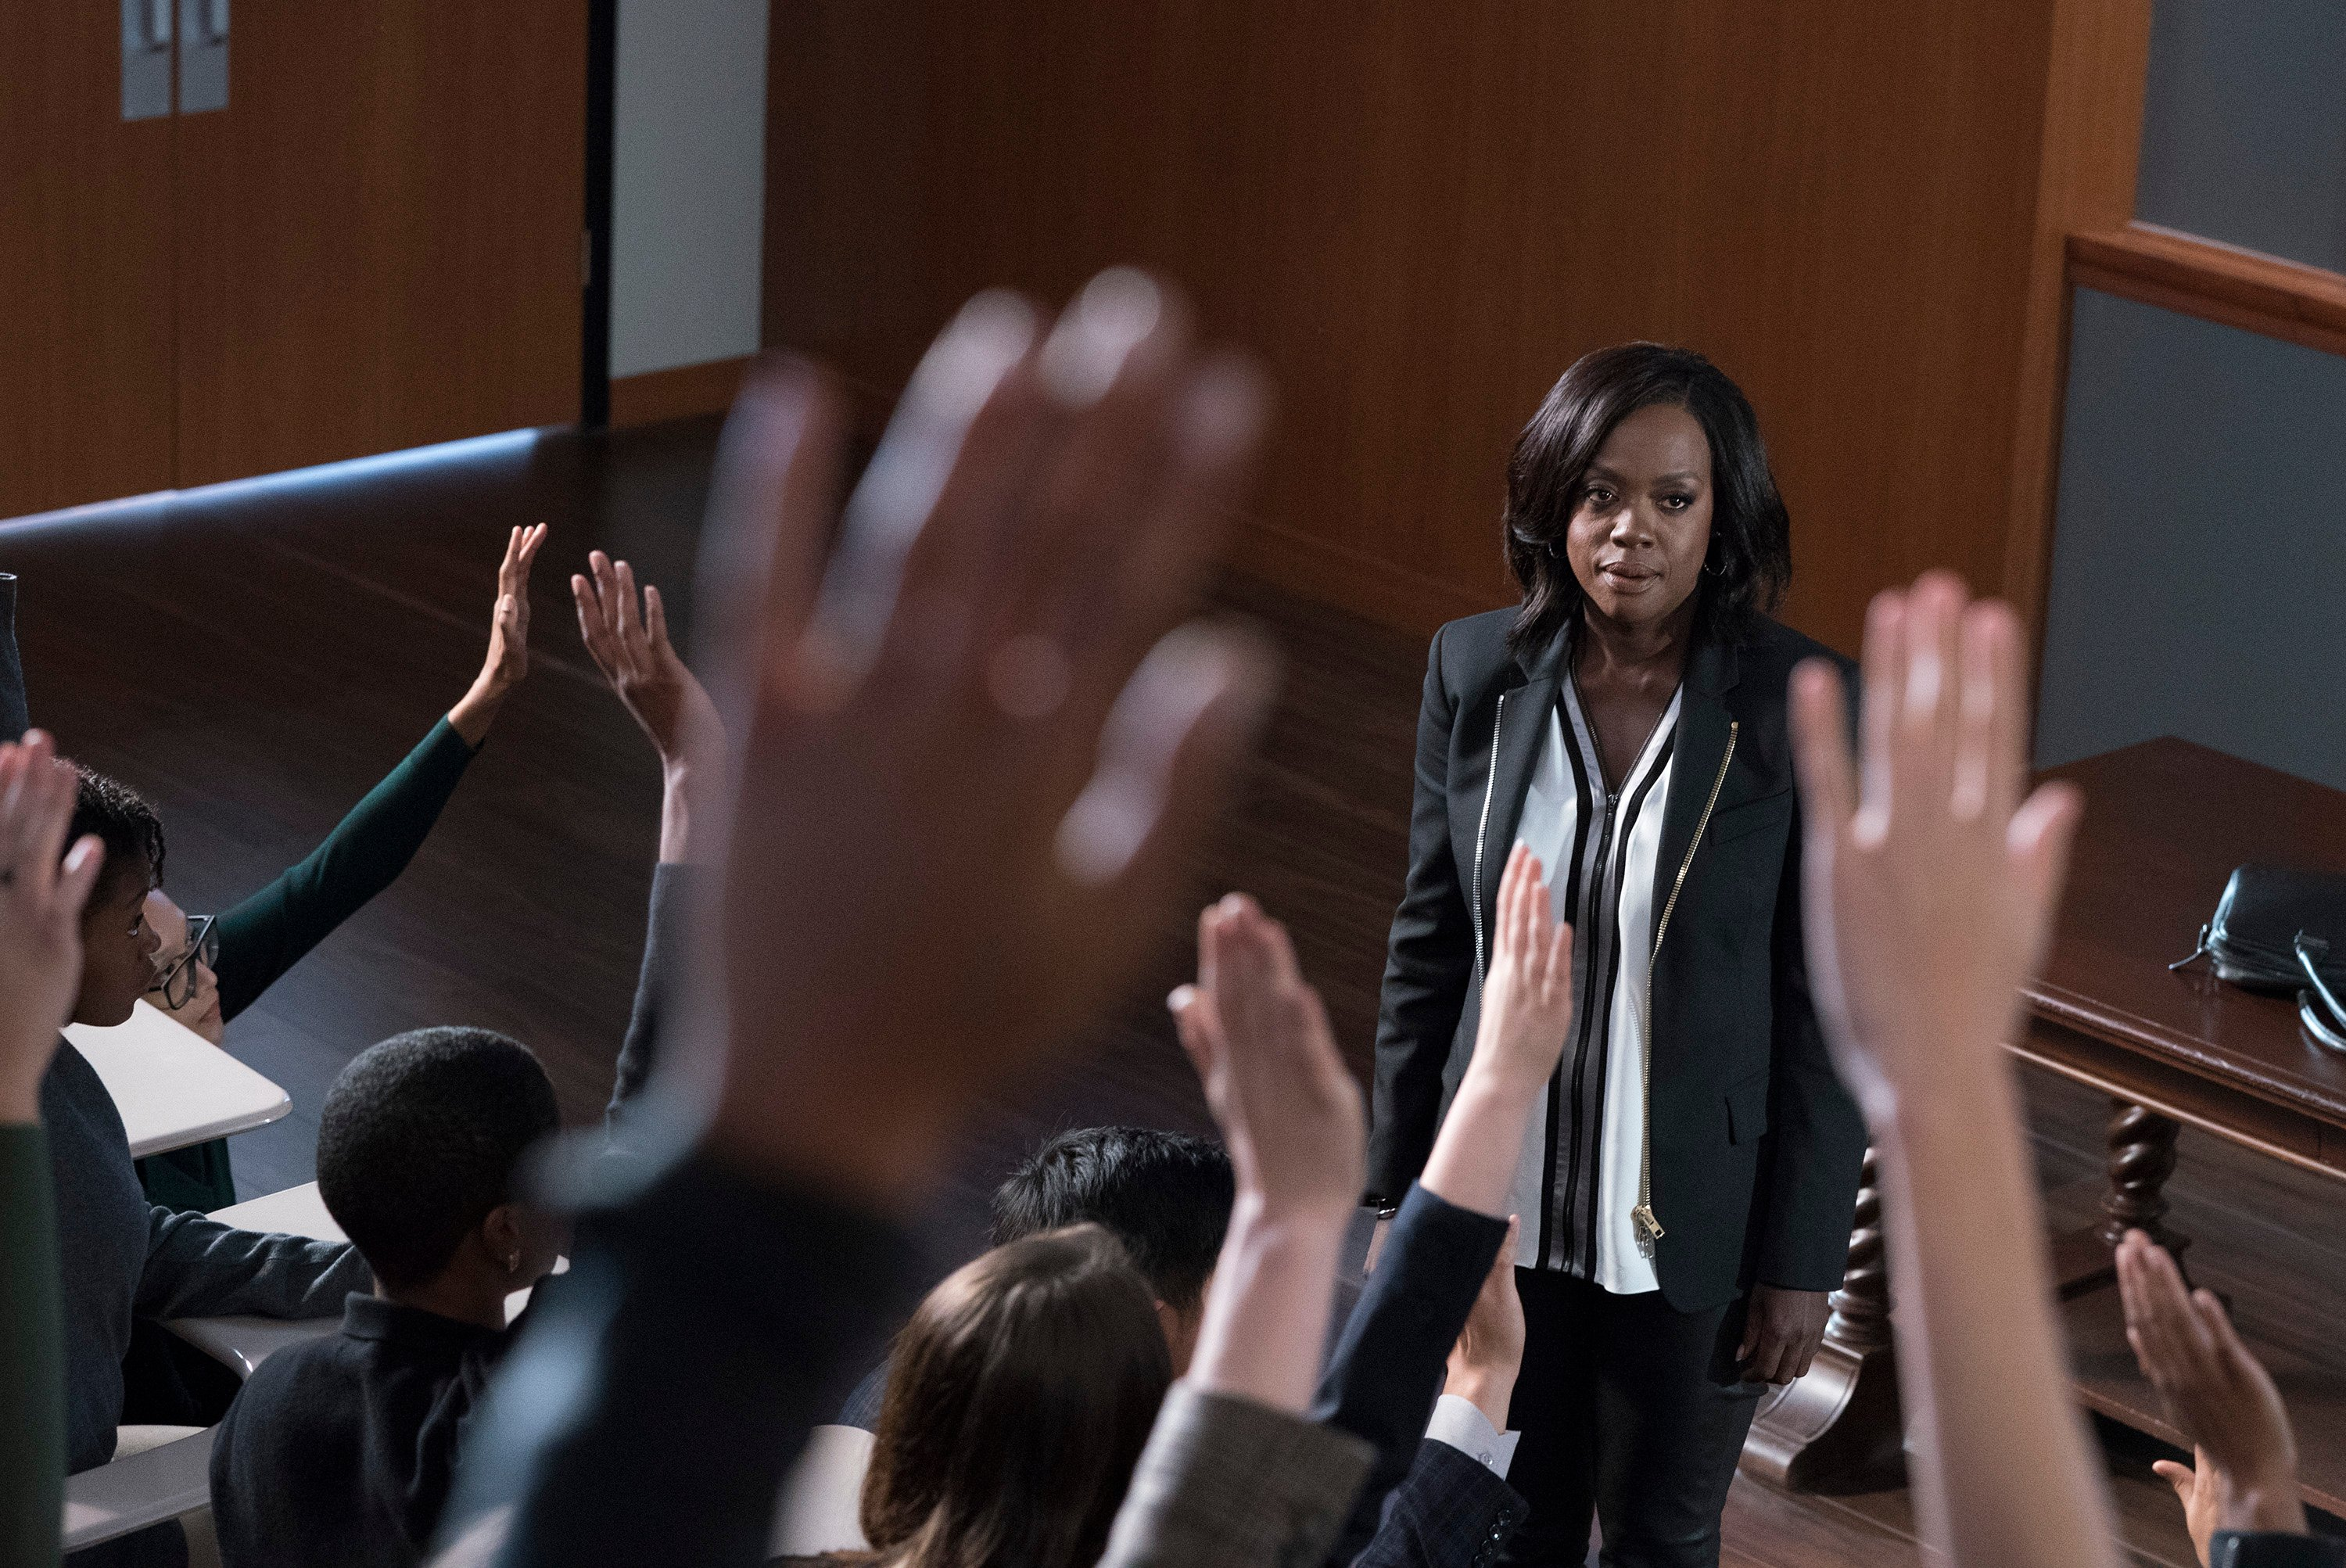 TV Moments, The end of the series with the same shots and dialogues it started with in How to Get Away with Murder. Except the professor changed from Annalise to Christopher.